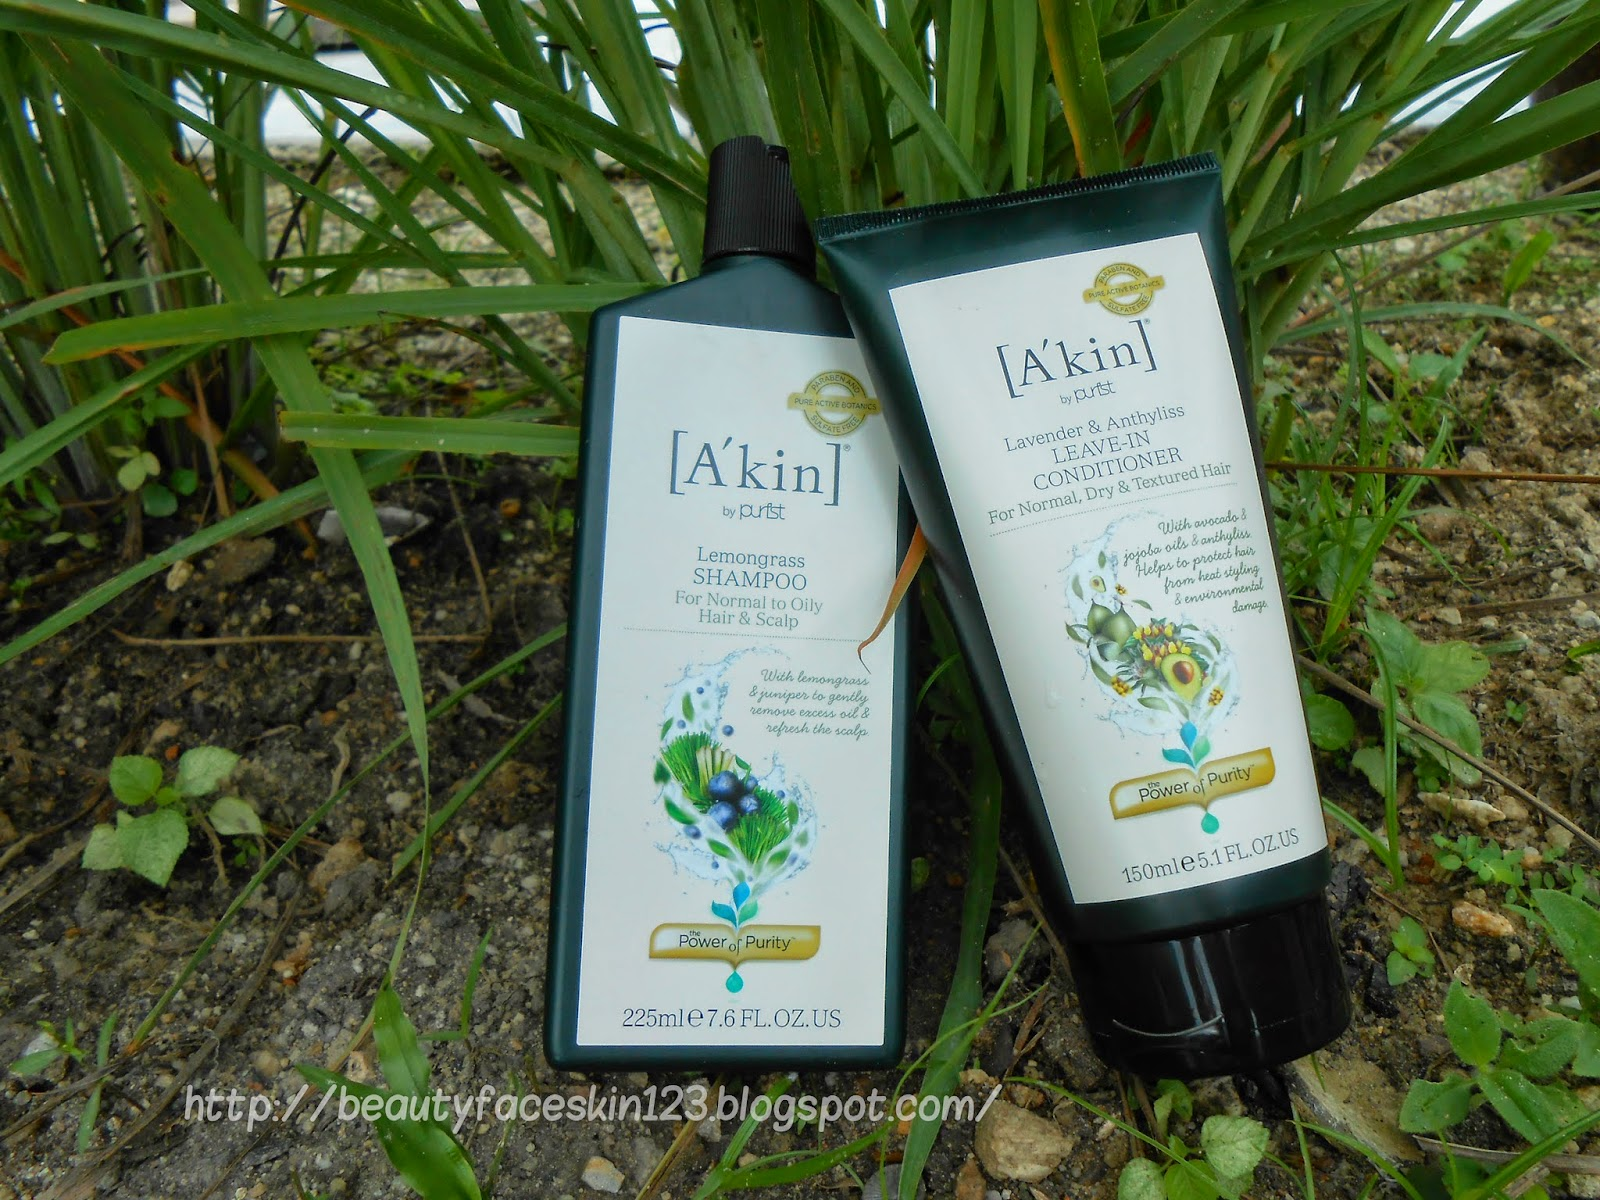 A'KIN LEMONGRASS SHAMPOO & A'KIN LAVENDER LEAVE-IN CONDITIONER